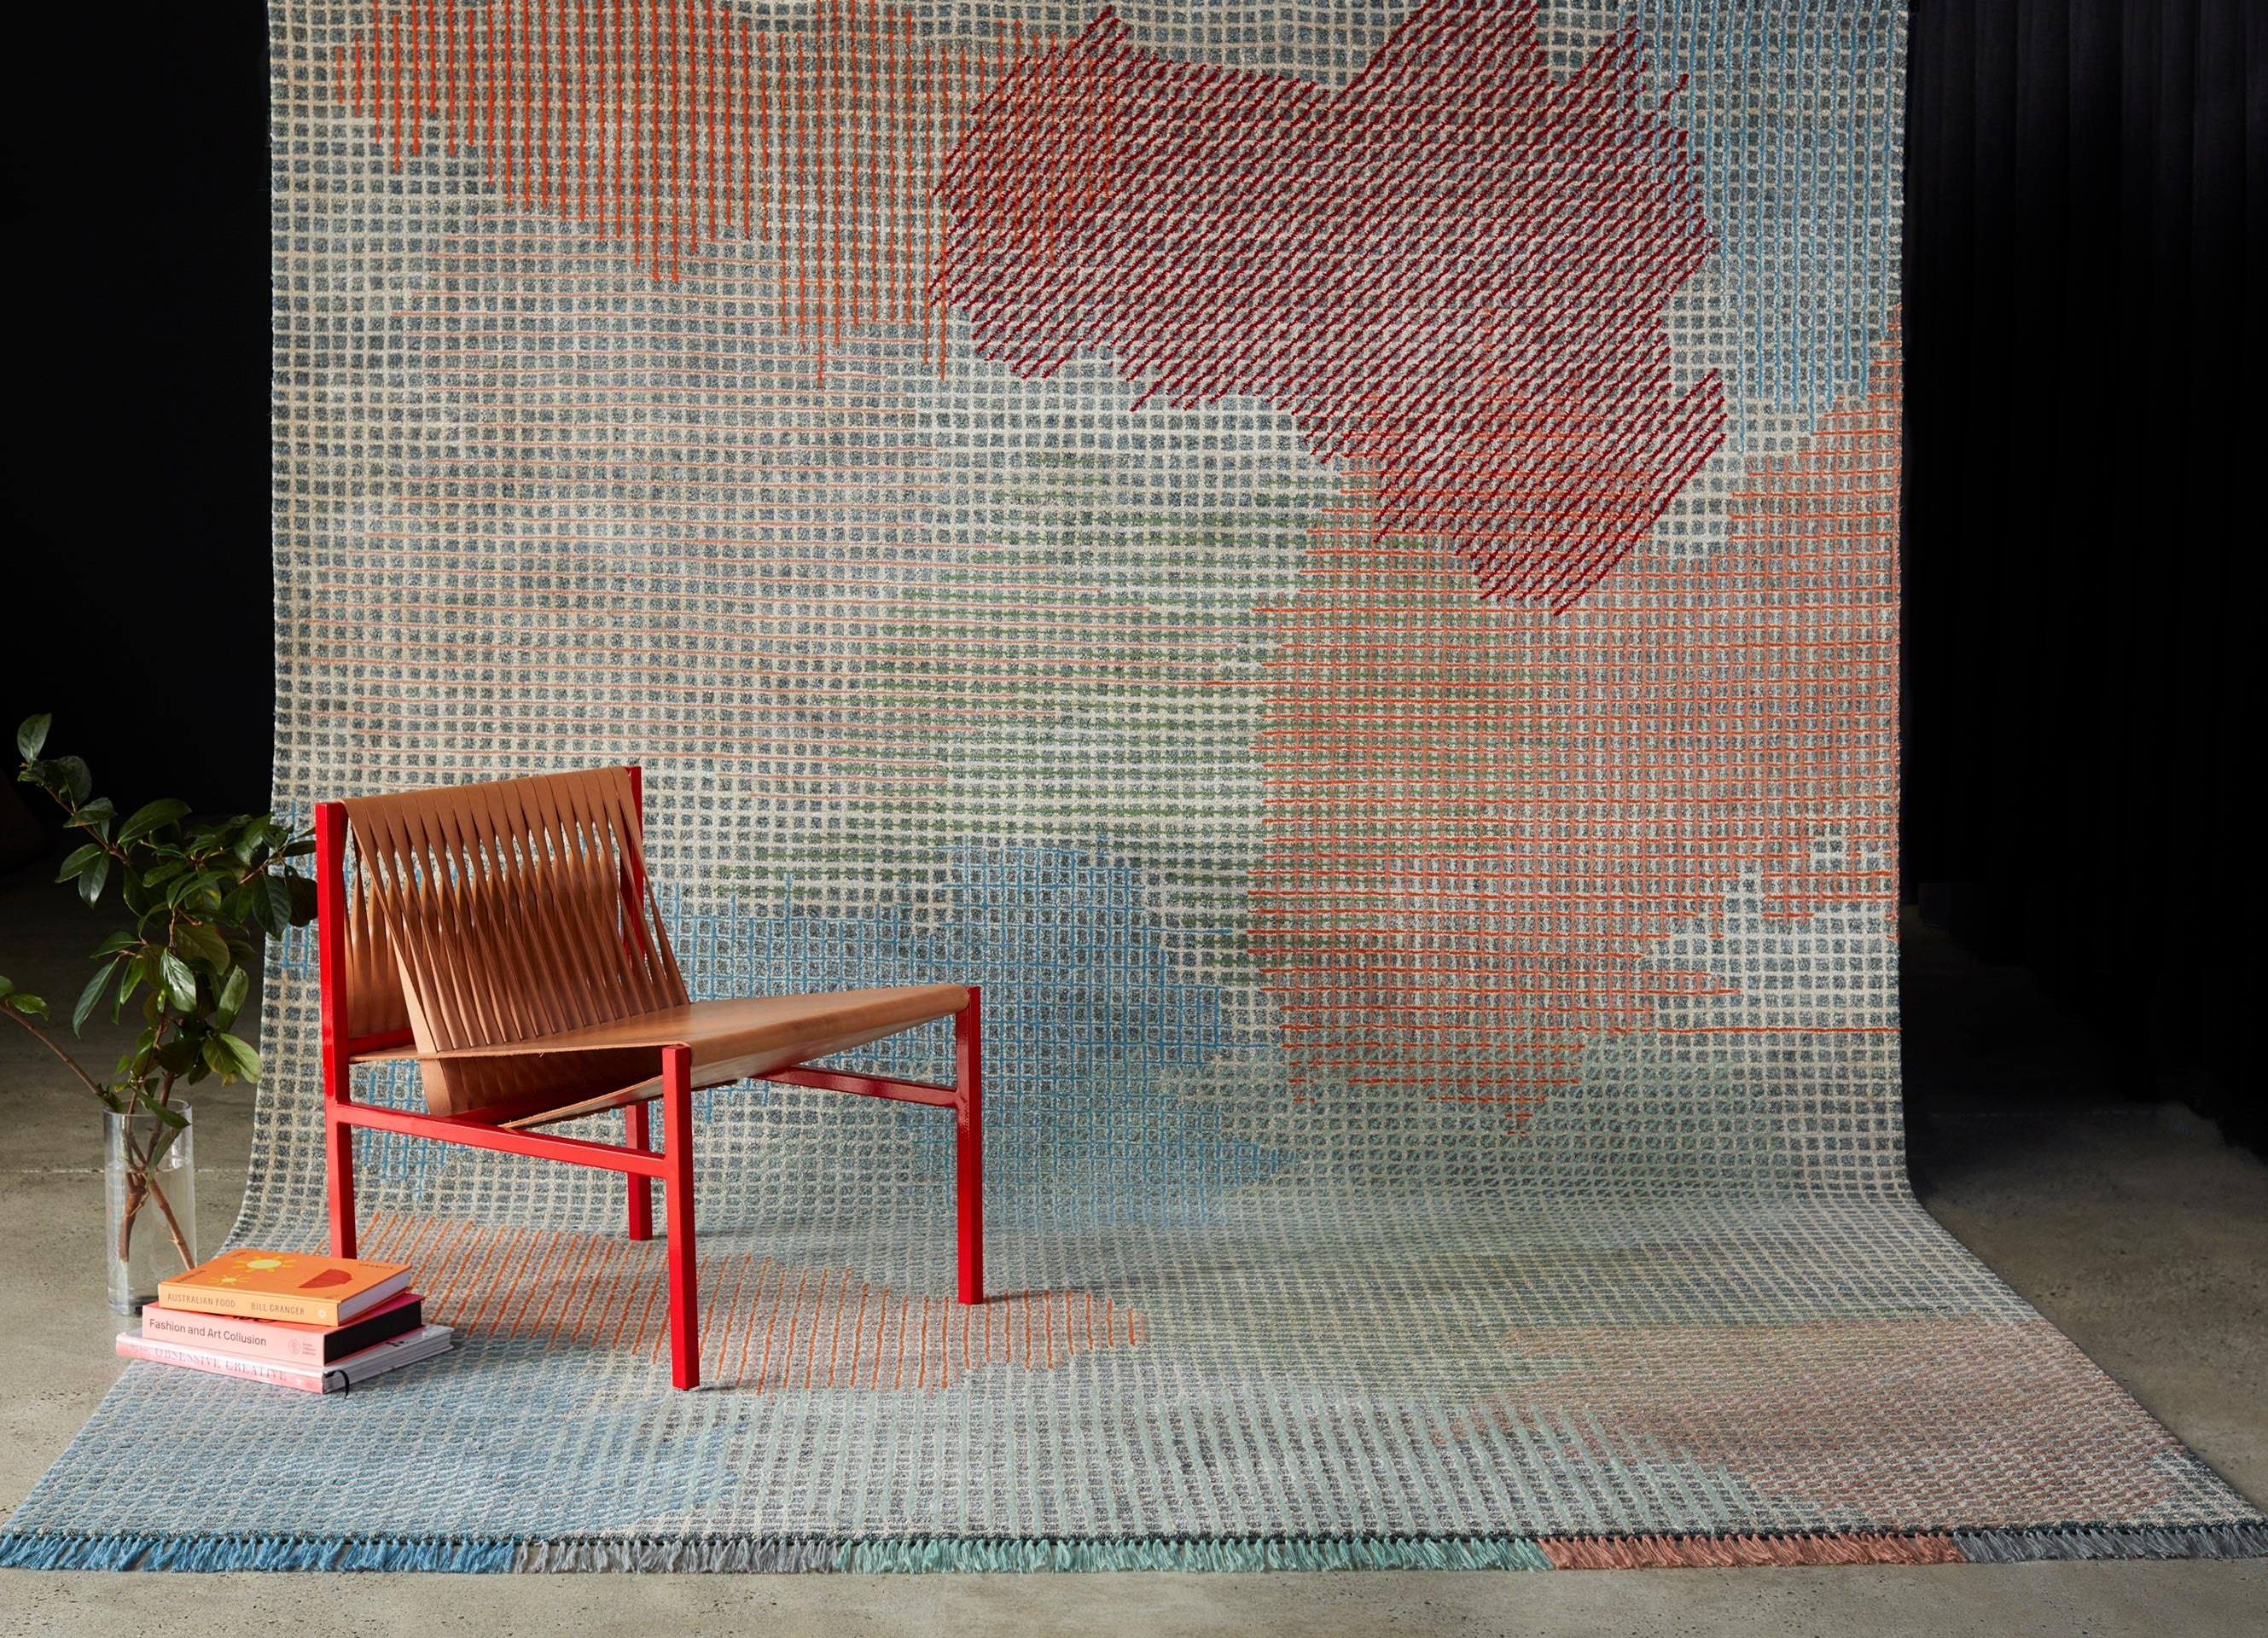 Griglia Rugs by Tappeti   DL Lounge Chair   DesignByThem